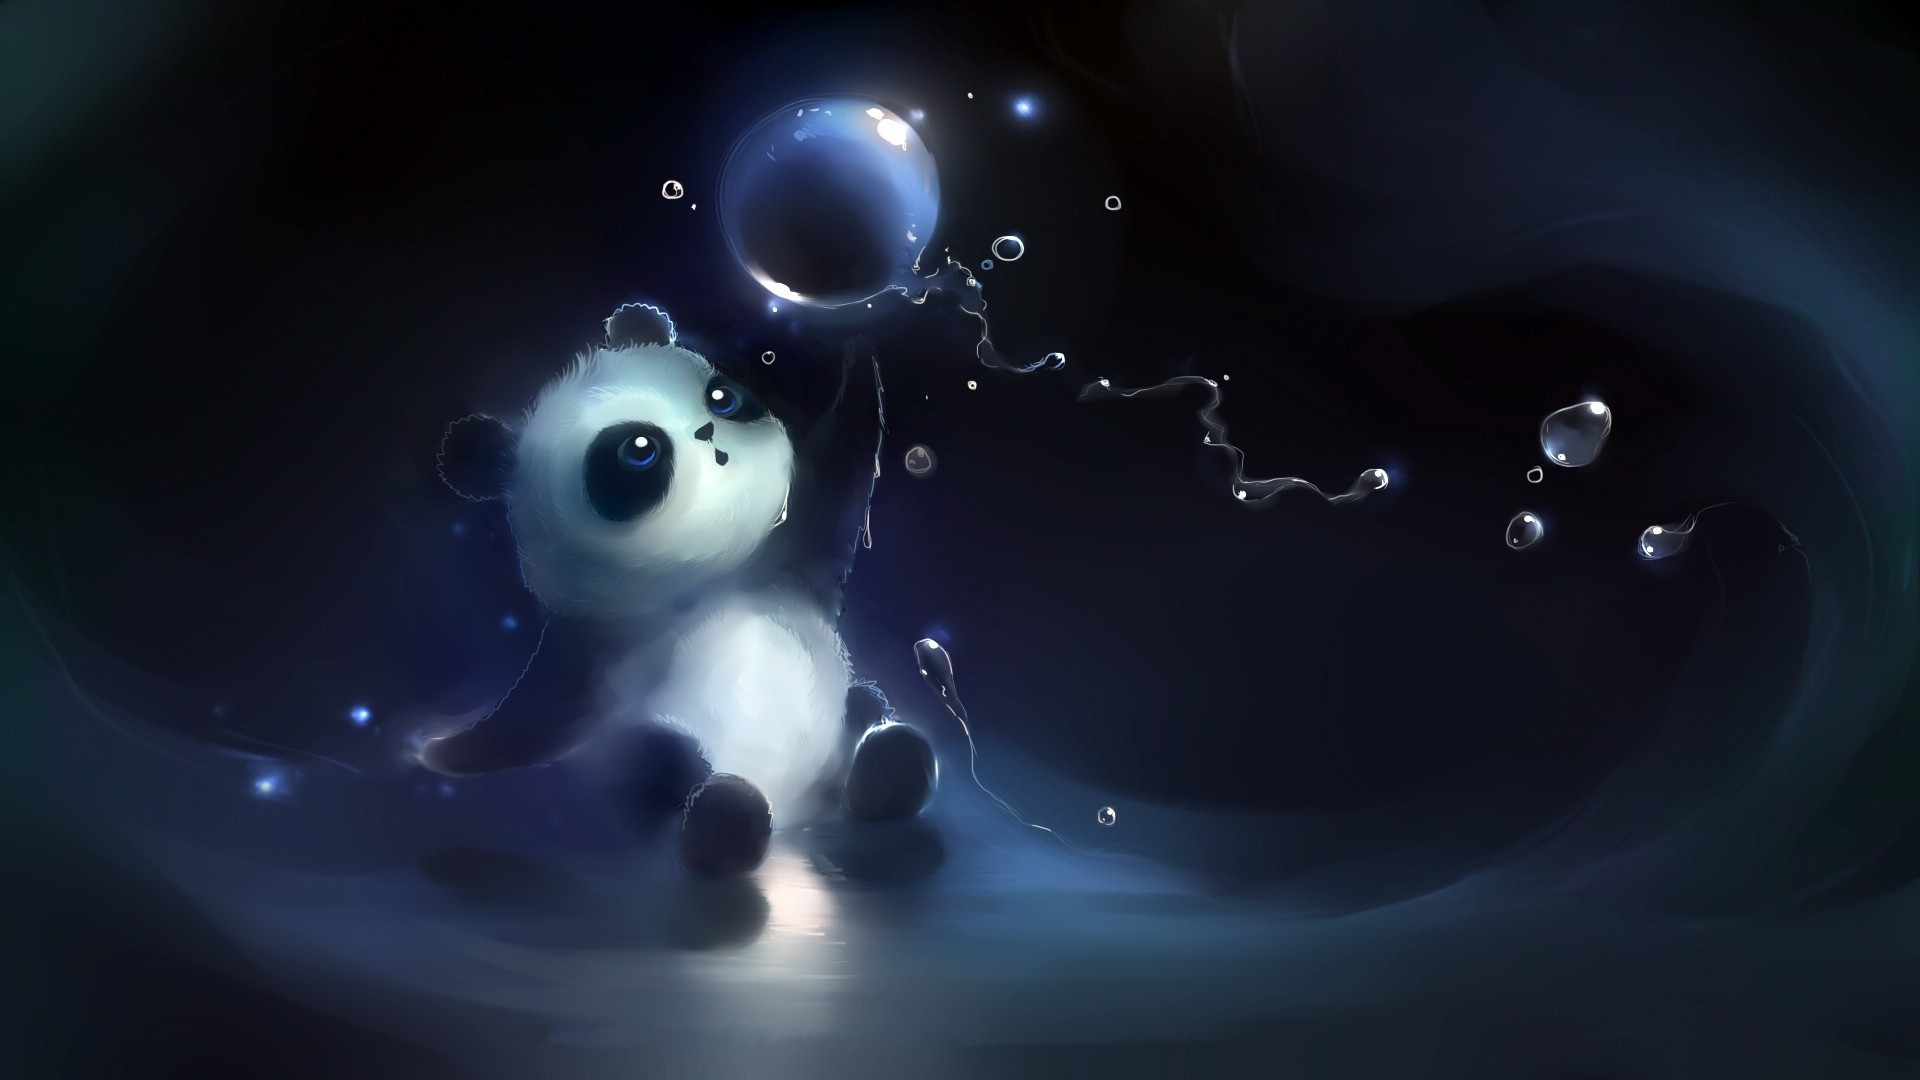 Panda Anime HD Wallpapers For Pc Amazing Wallpaperz 1920x1080